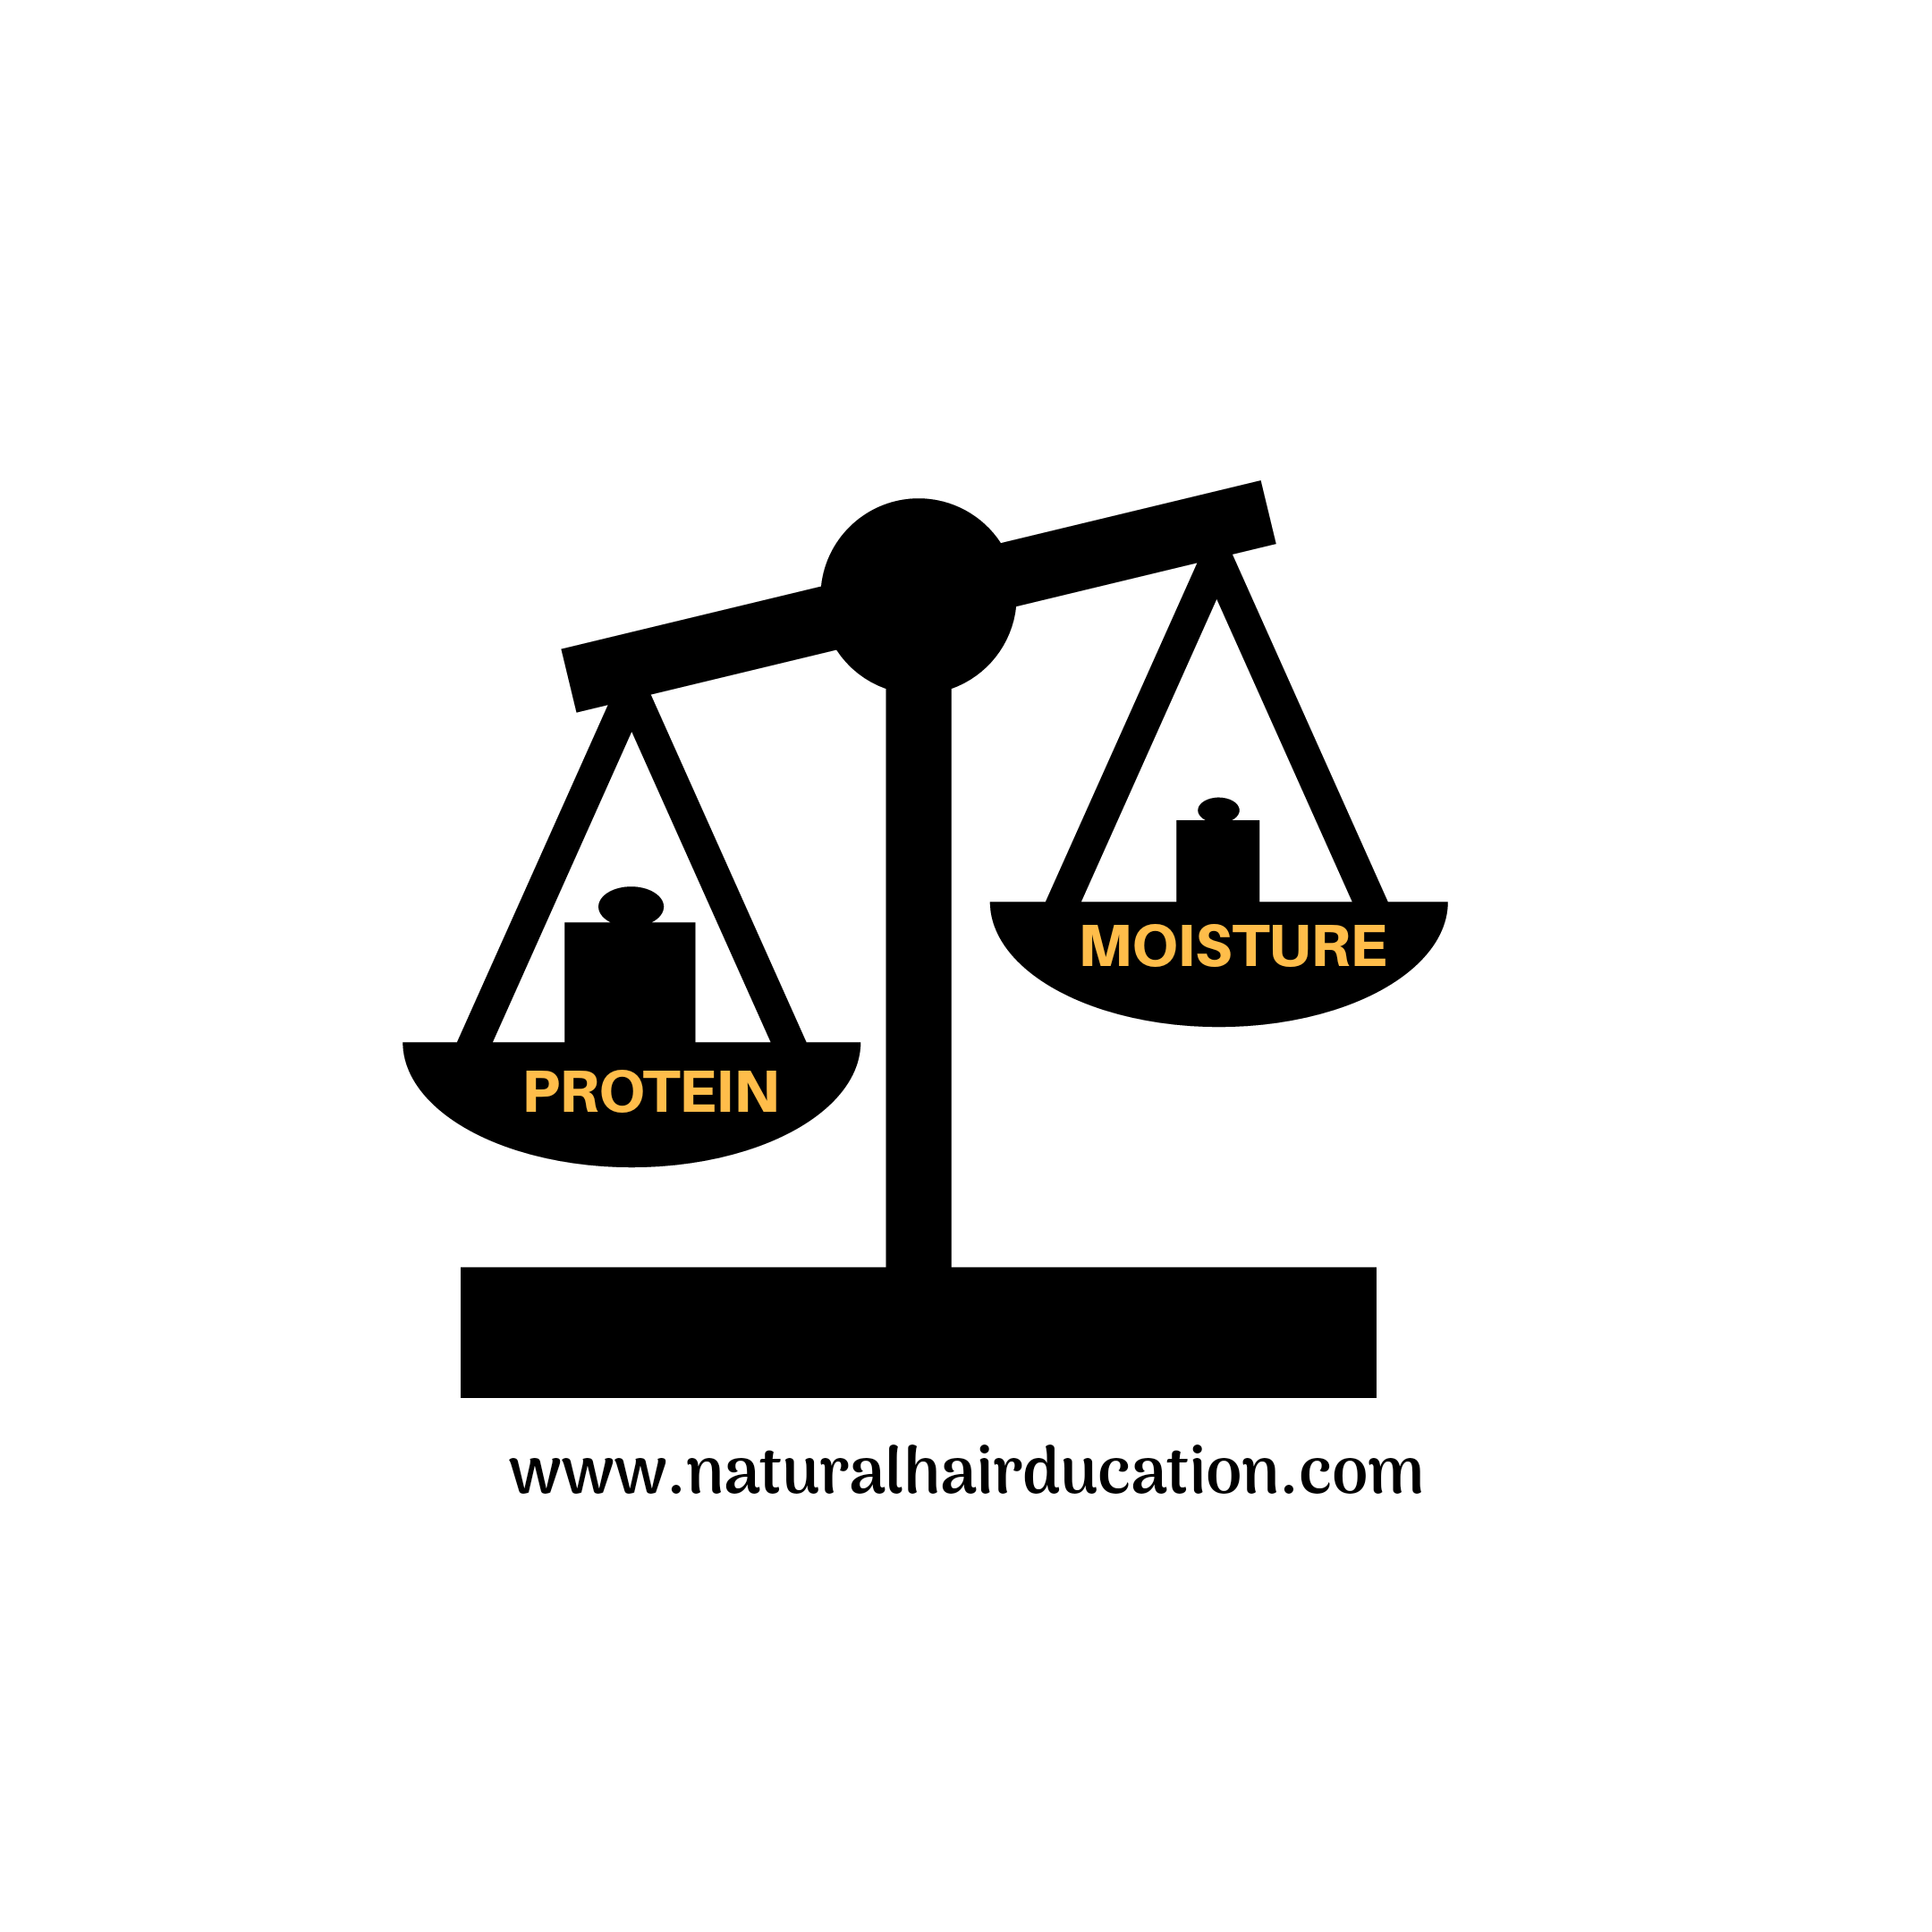 HOW TO MAINTAIN PROTEIN AND MOISTURE BALANCE IN NATURAL HAIR